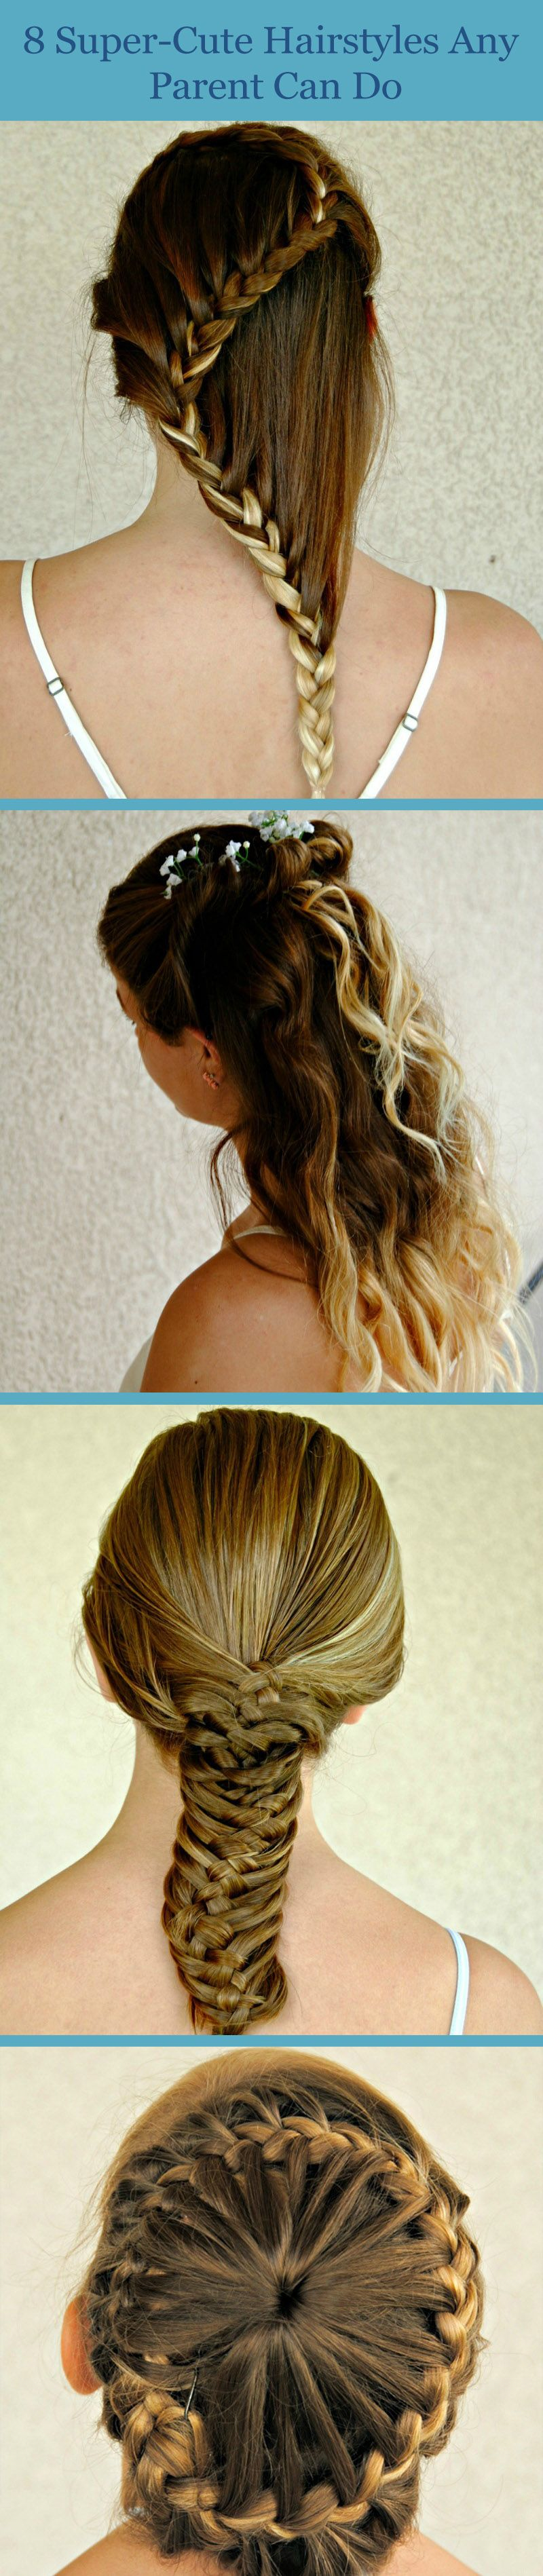 supercute hairstyles any parent can do themselves easy kid